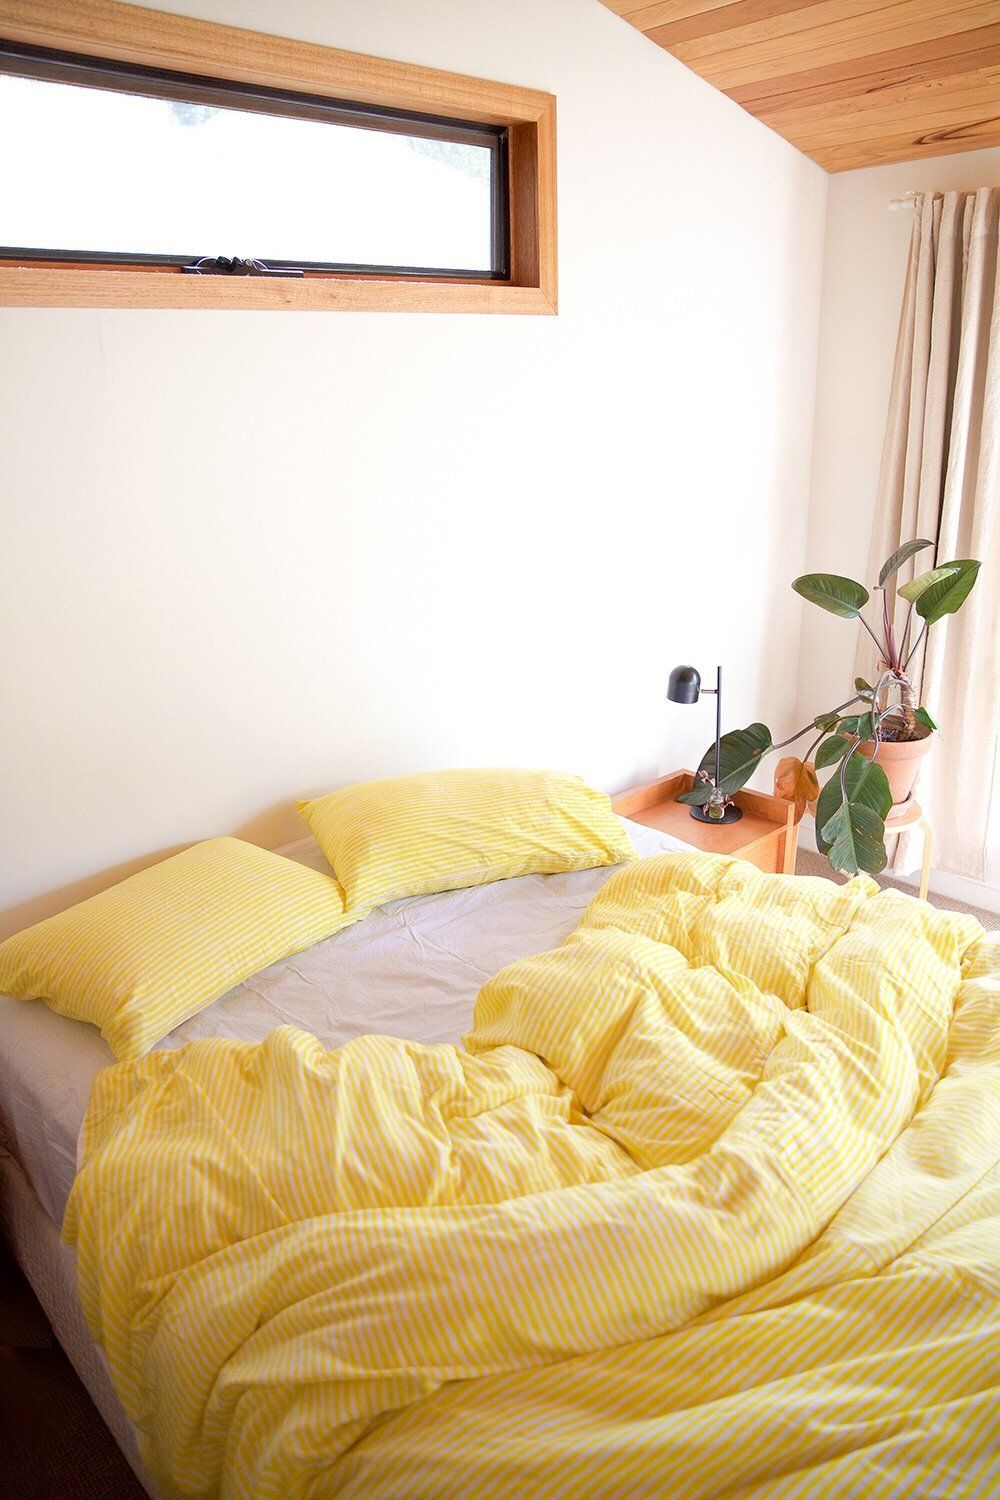 Pin By Emily Moore On Yellow Inspo Yellow Bedroom Decor Yellow Room Yellow Room Decor Newest yellow aesthetic bedroom